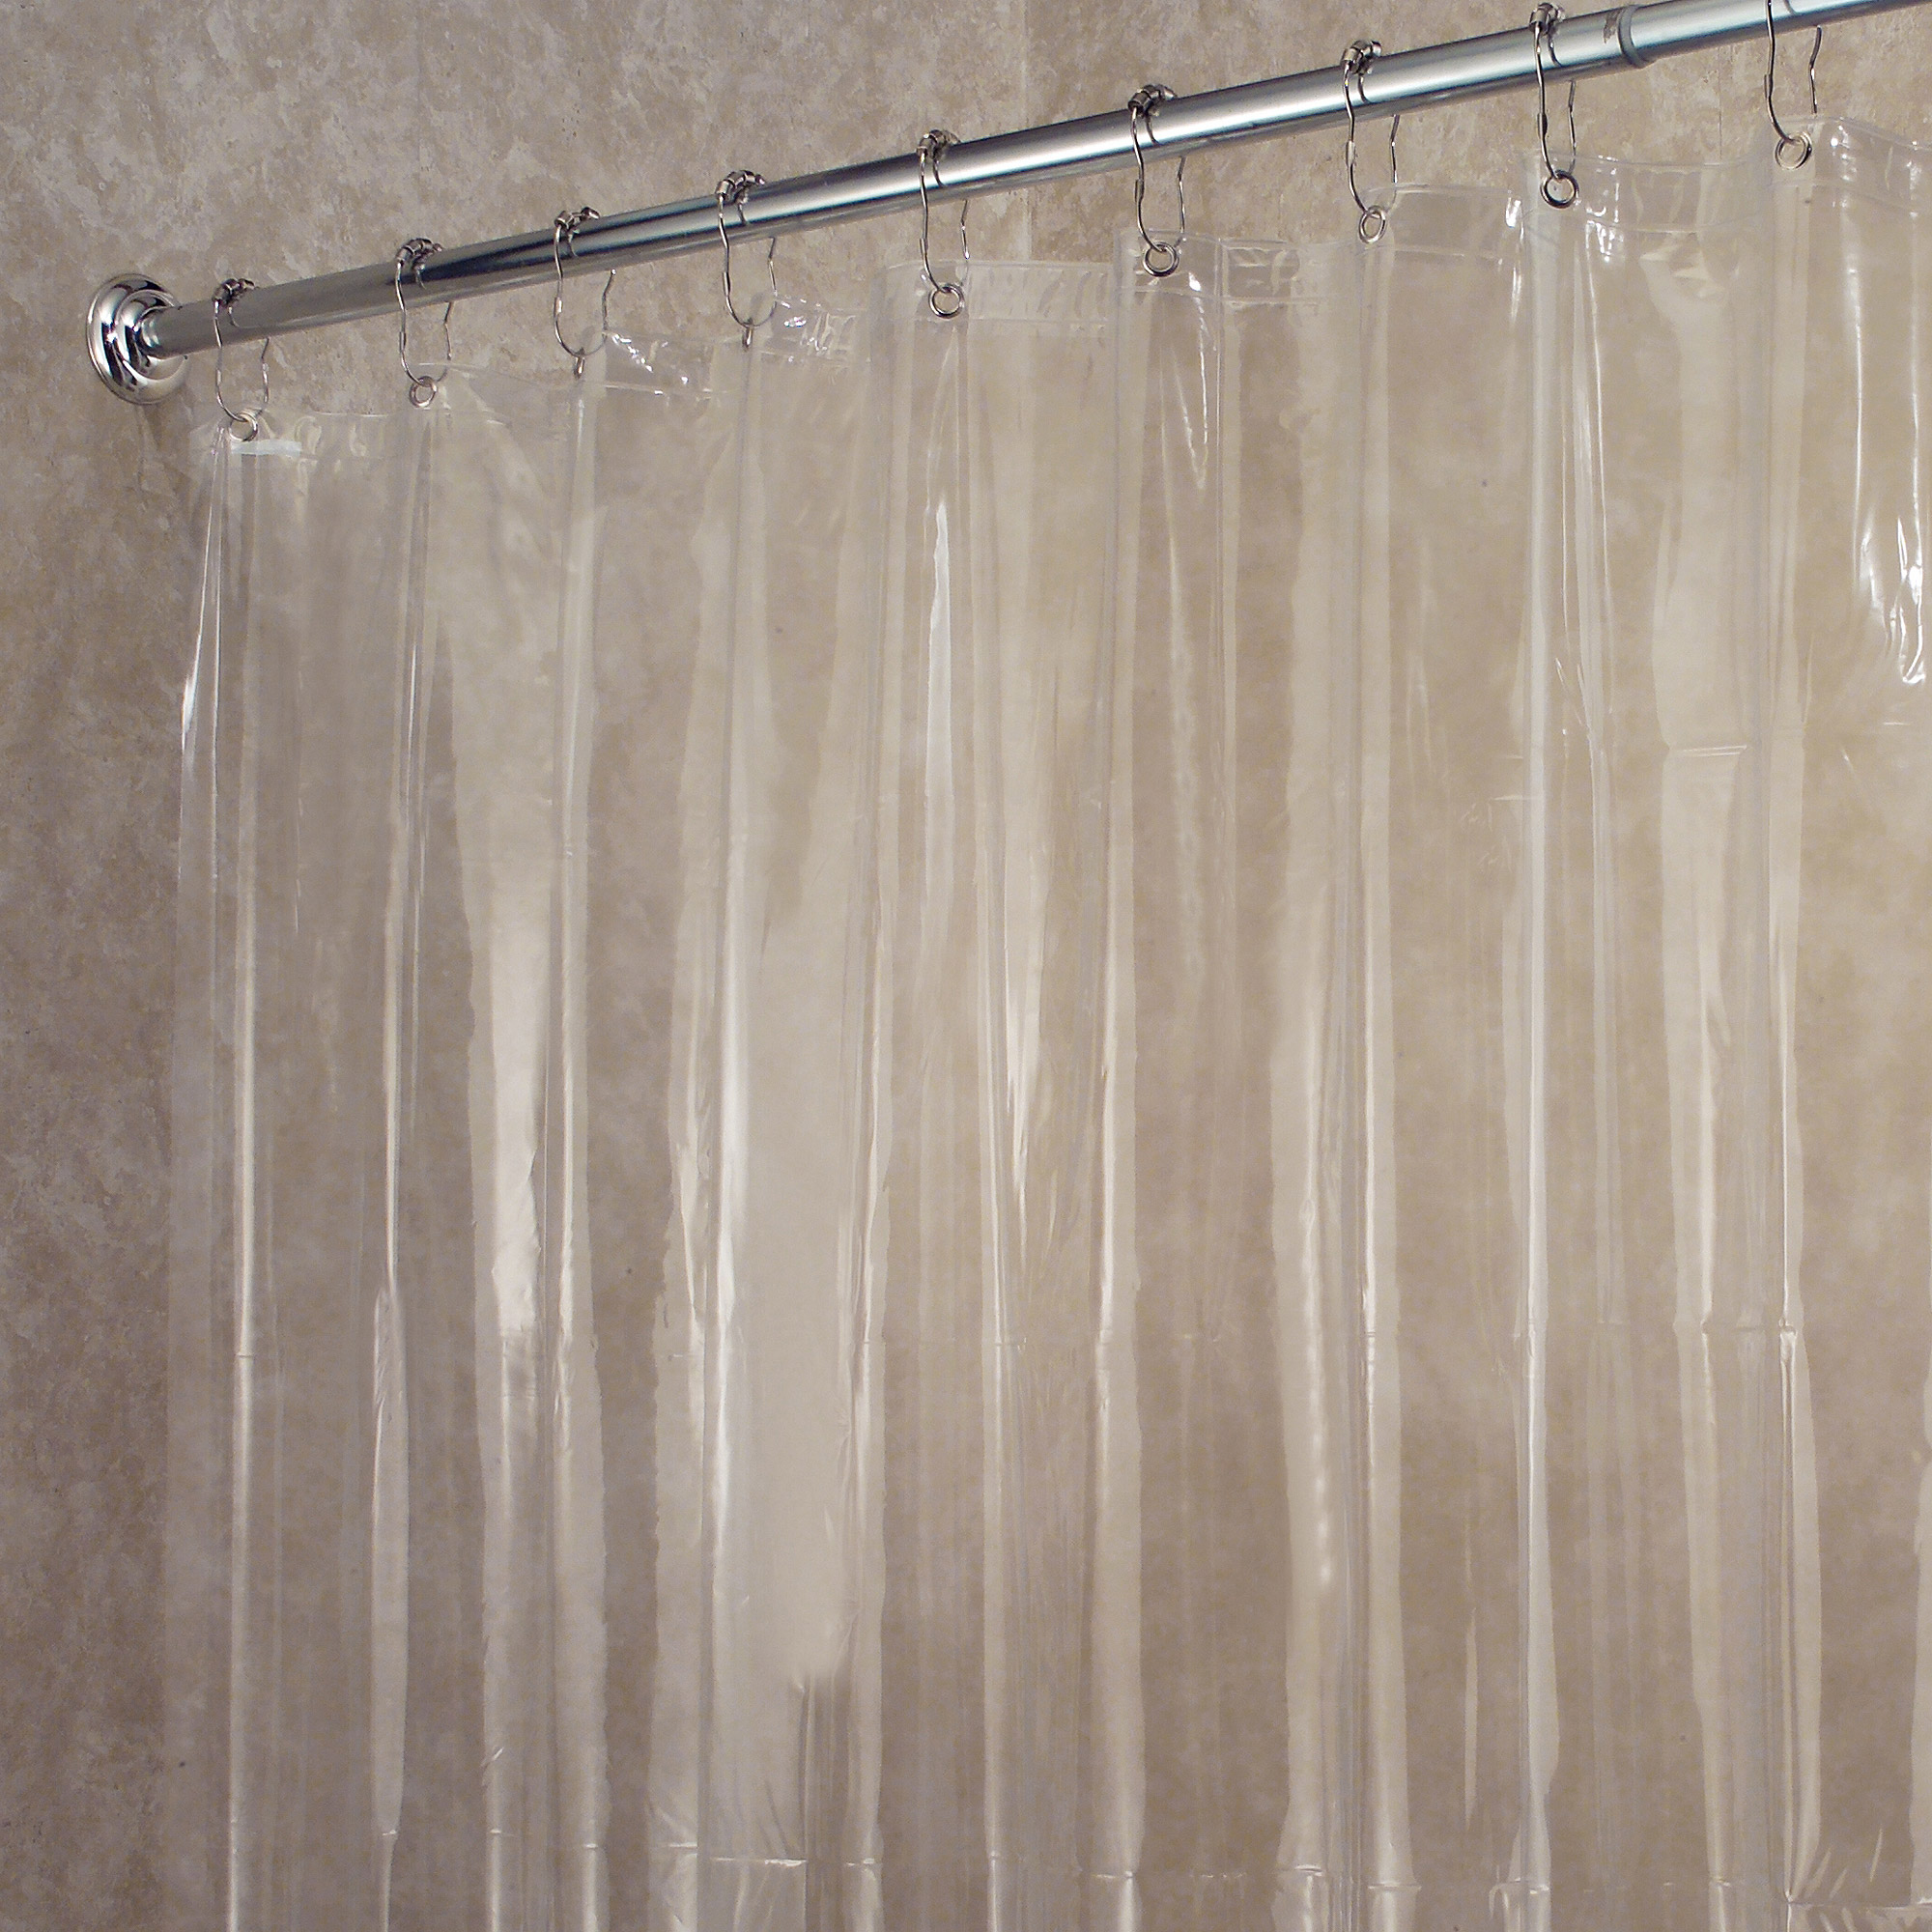 liners curtain coffee long measurements within ideas curtains x target inch shower extra tables